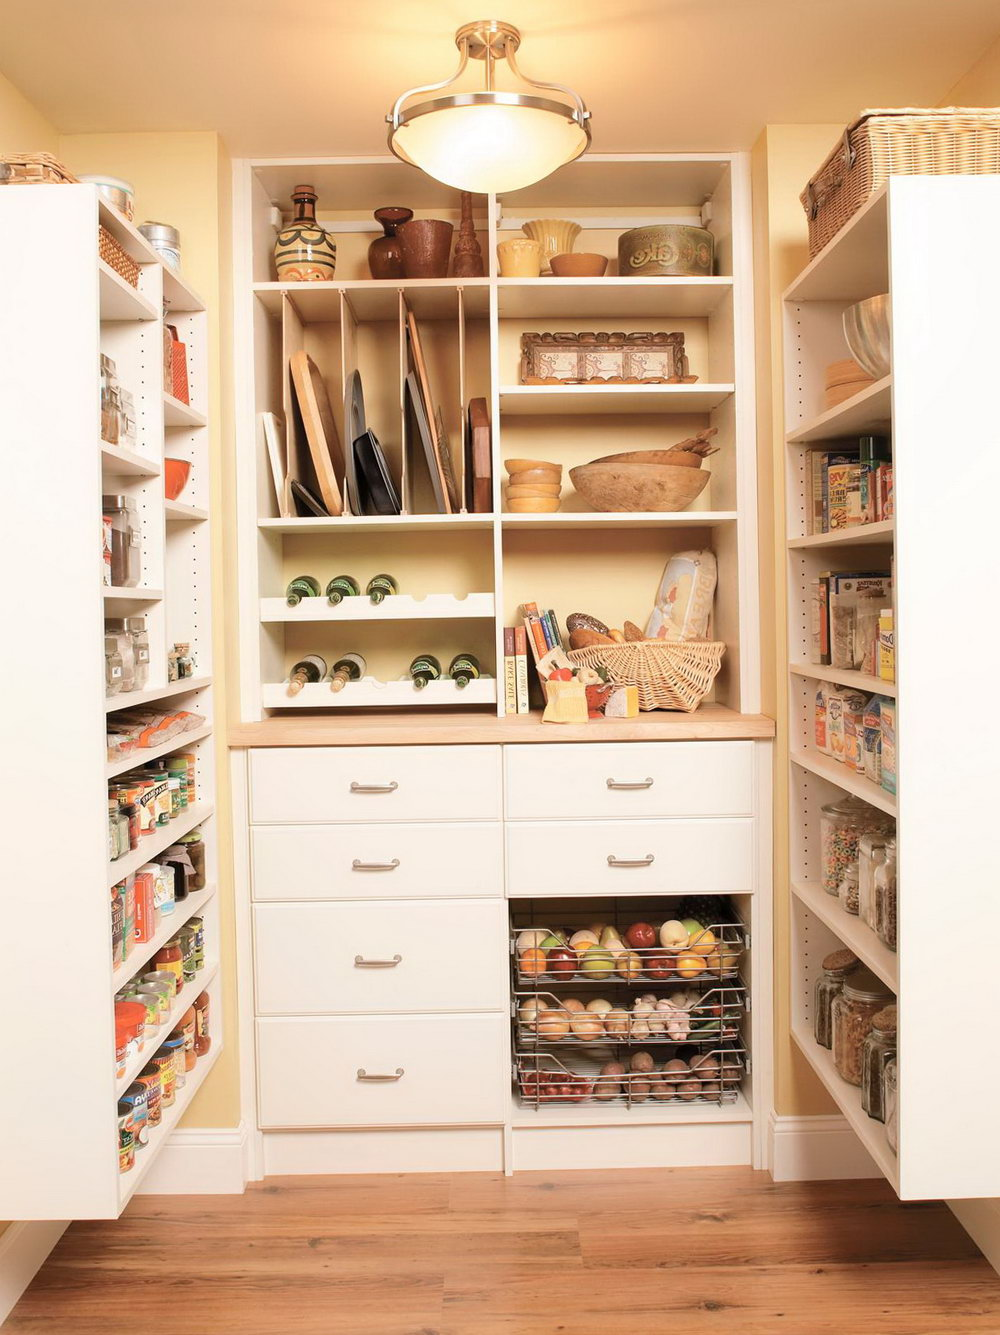 Pantry Style Kitchen Cabinets